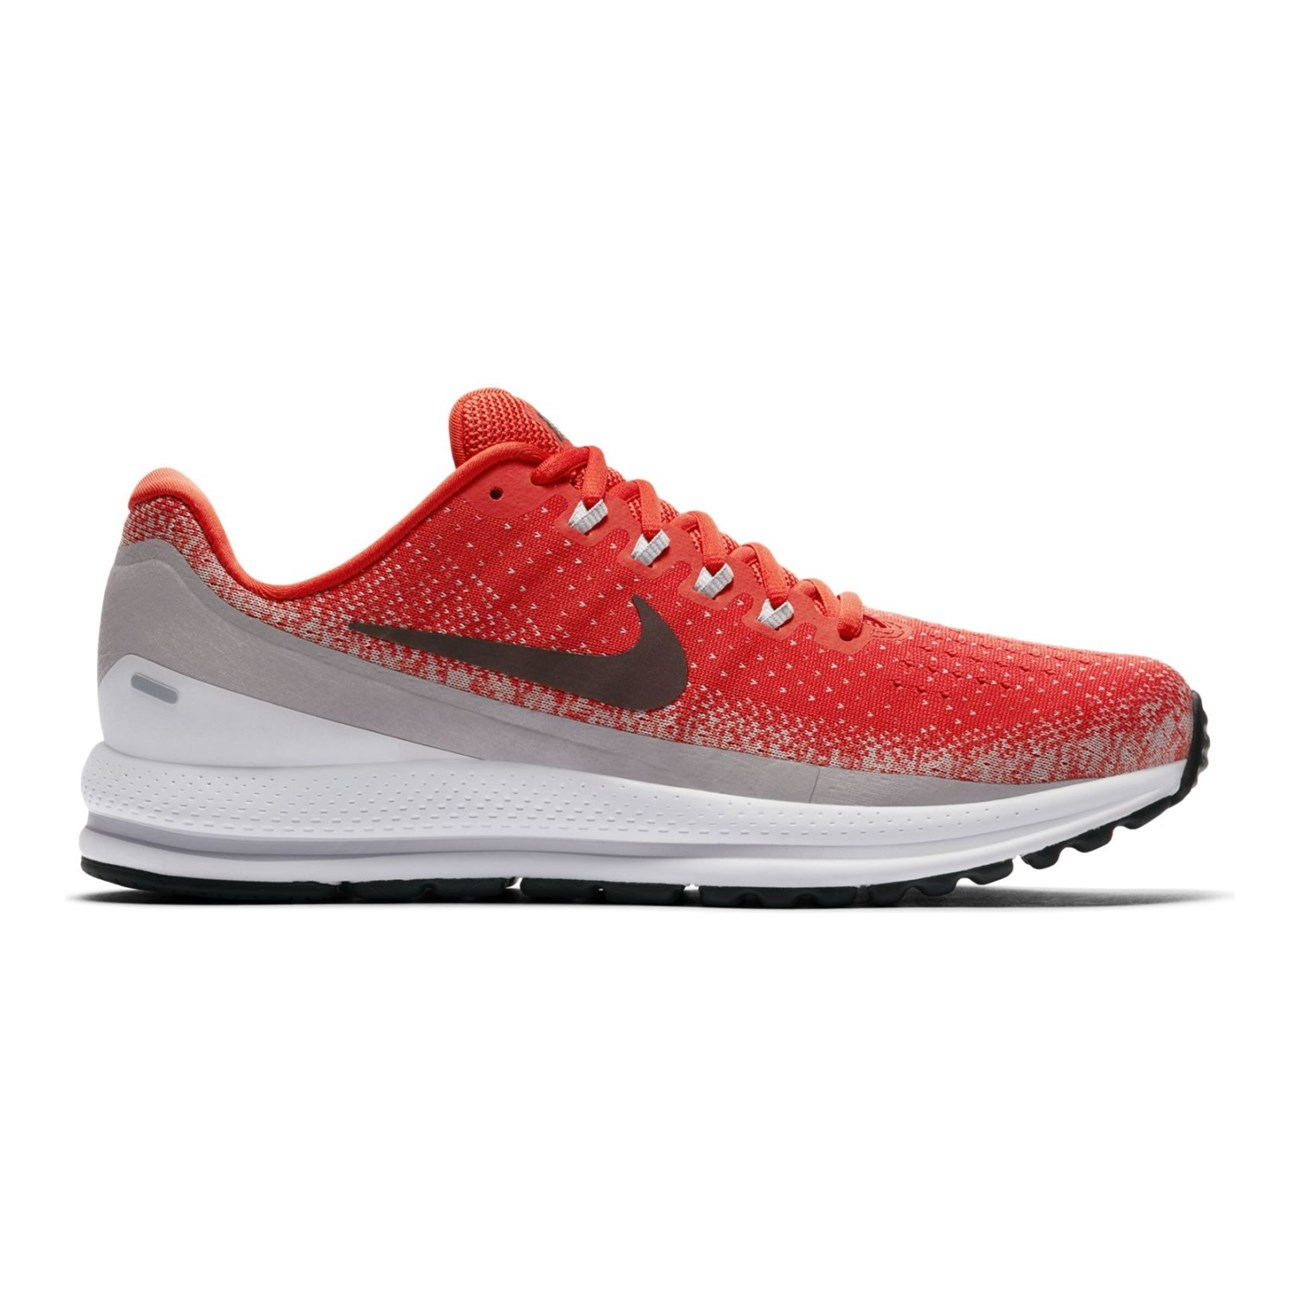 official photos 79b98 d4a55 switzerland nike zoom vomero 9 intersport 76144 acb8c  new style nike air  zoom vomero 13 0 1d862 6060d